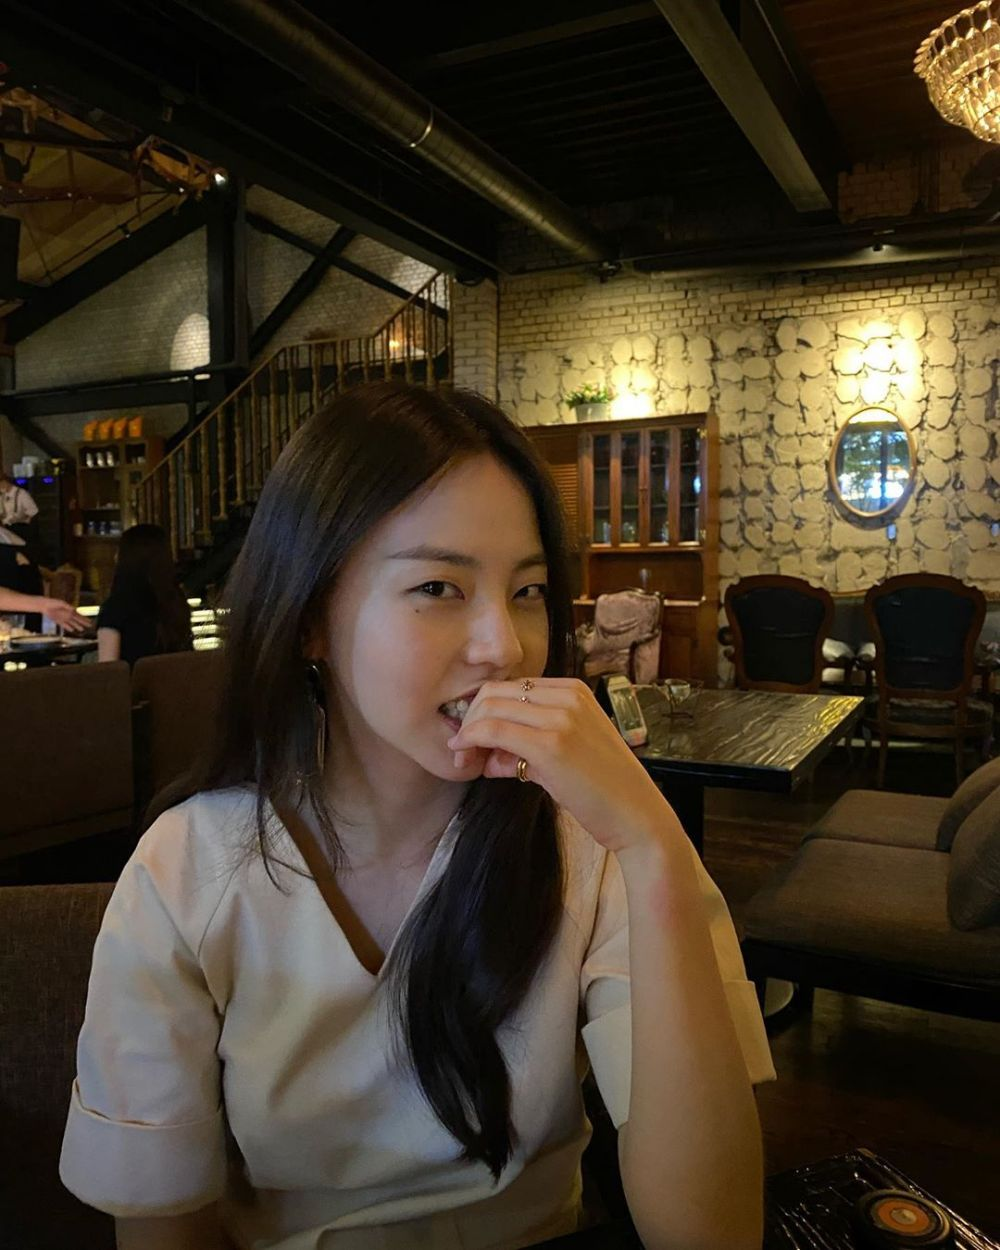 10 Pesona Ahn So Hee, Hacker Kece di KDrama 'Missing: The Other Side'